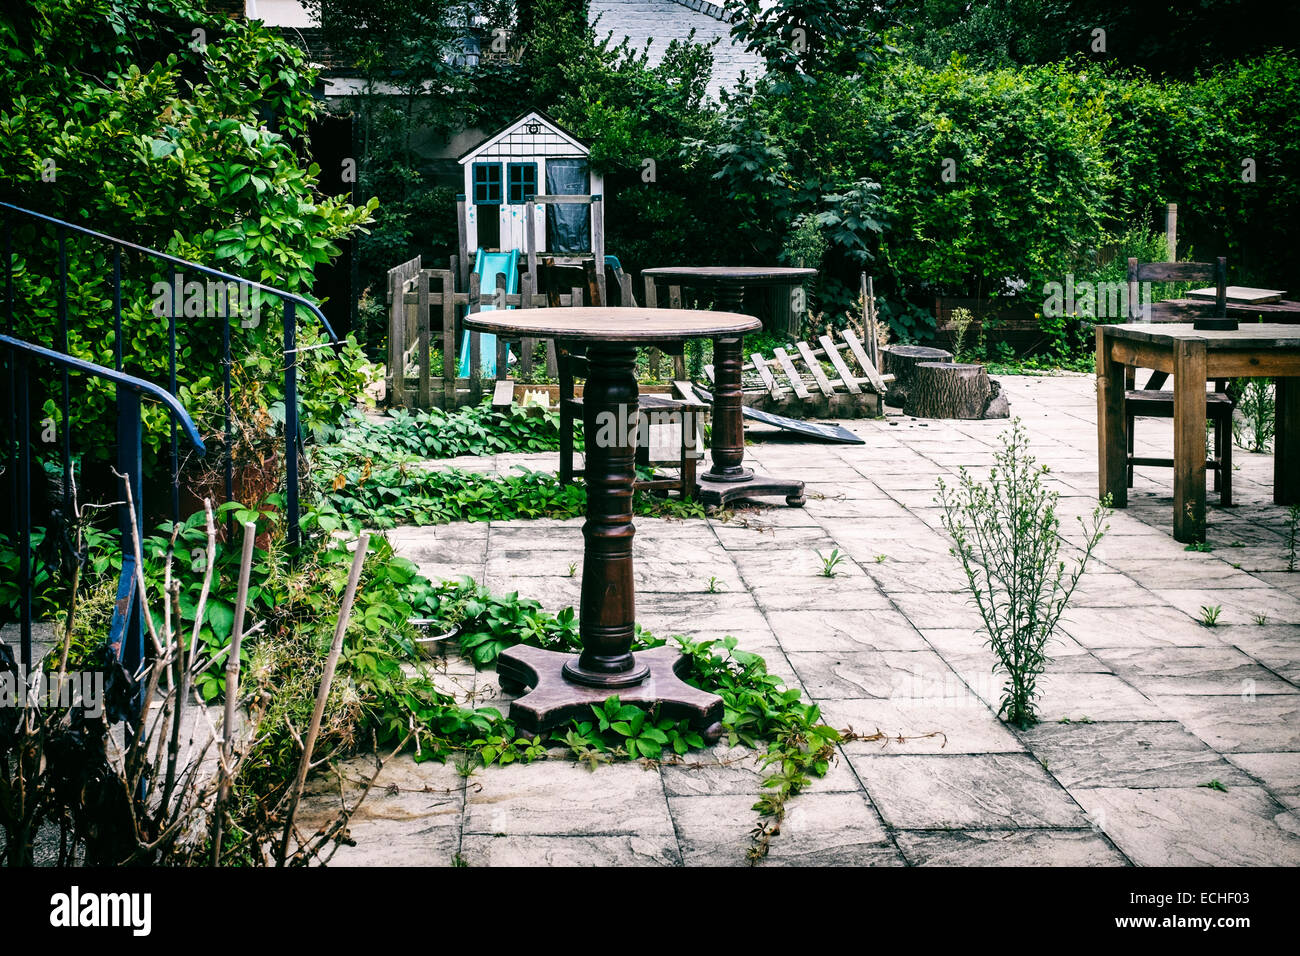 Urban decay - Overgrown garden of closed pub - weeds and dilapidated tables and chairs - Stock Image